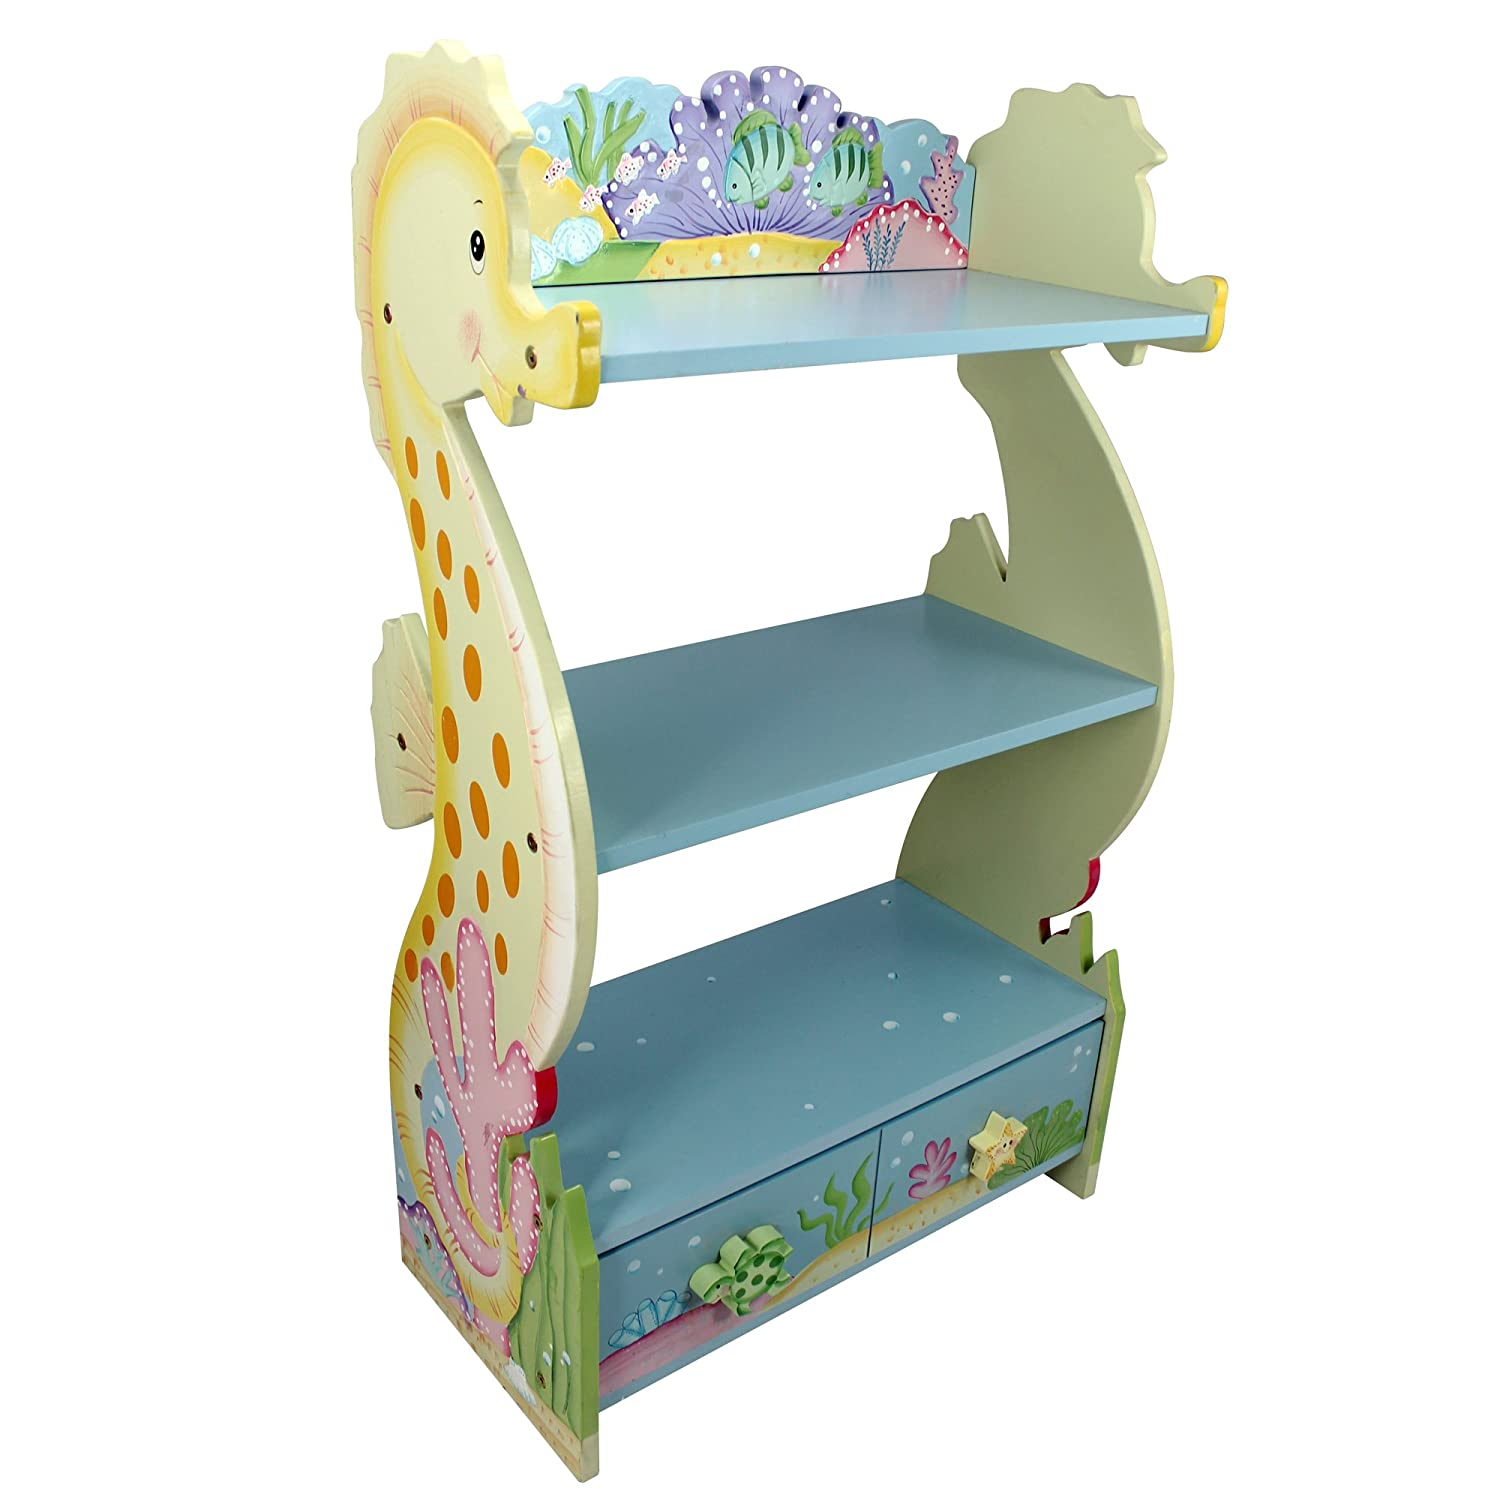 586da0aca1d0 Fantasy Fields - Under The Sea Thematic Kids Wooden Bookcase With Storage,  Blue